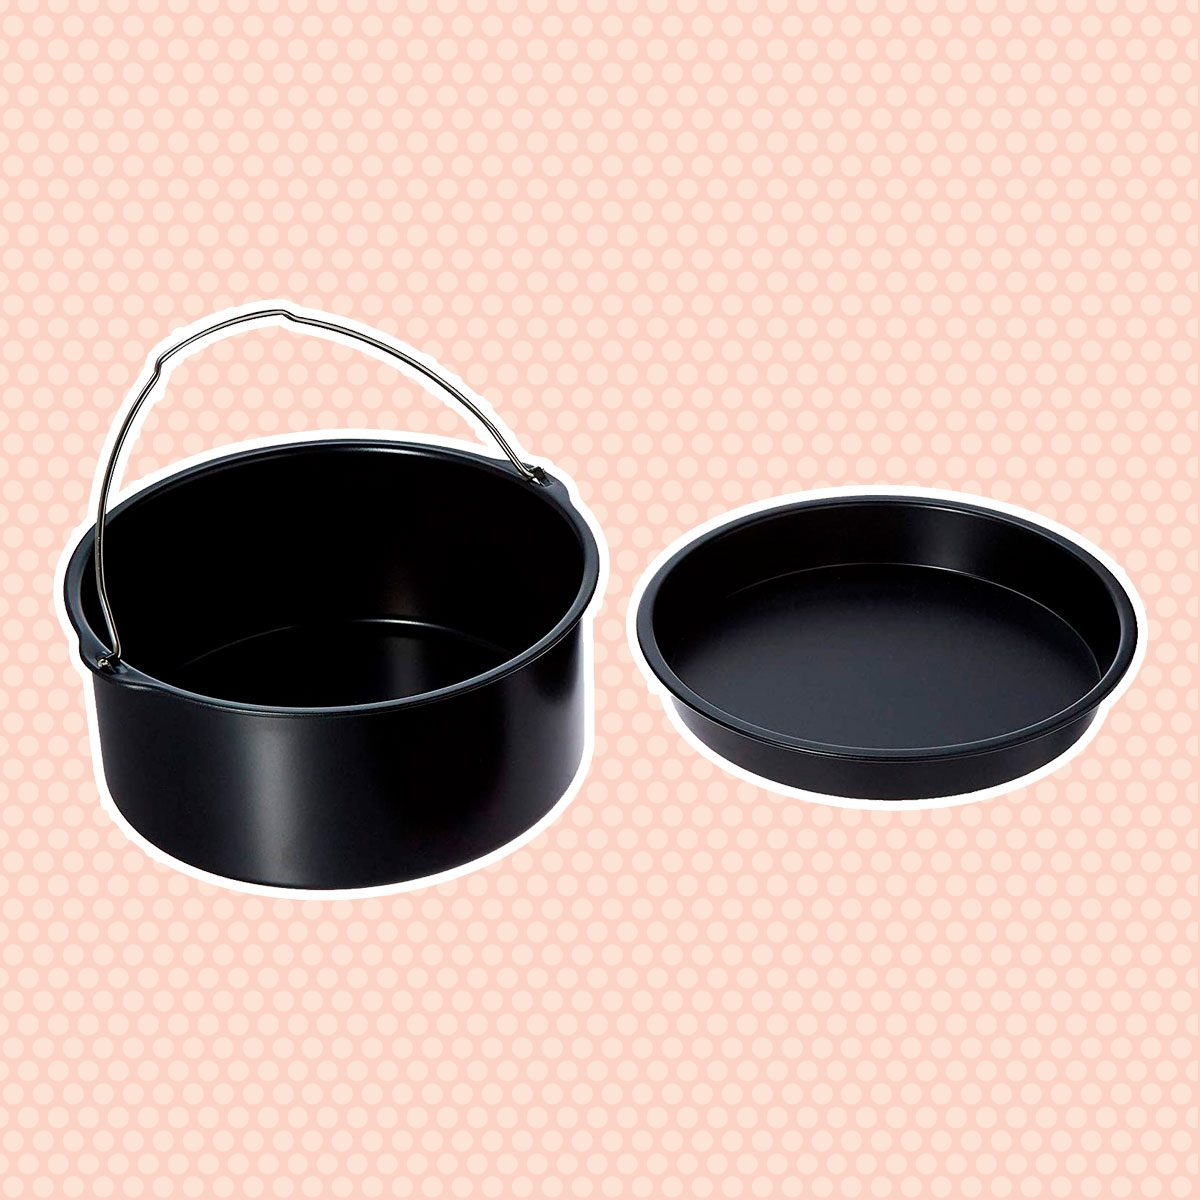 2 Pcs Air Fryer Accessories for 3.2QT-4.2QT Ninja Gourmia Cosori Phillips Gowise, with 7 Inch Cake Barrel, Pizza Pan (Black Round)